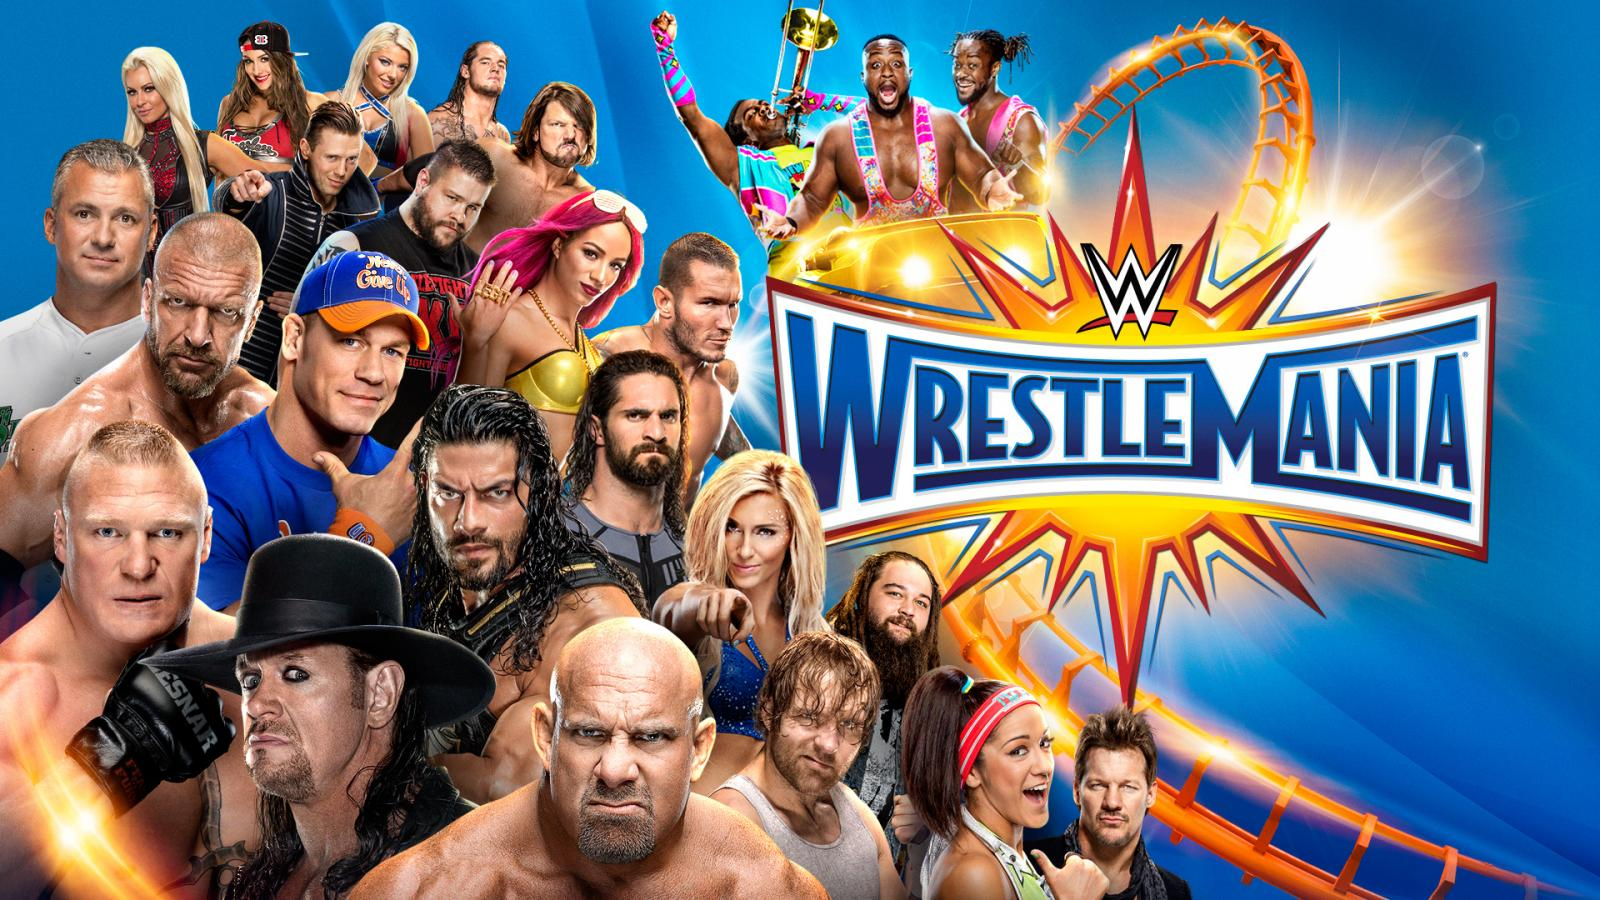 wwe wrestlemania 33 7 predictions that wont come true